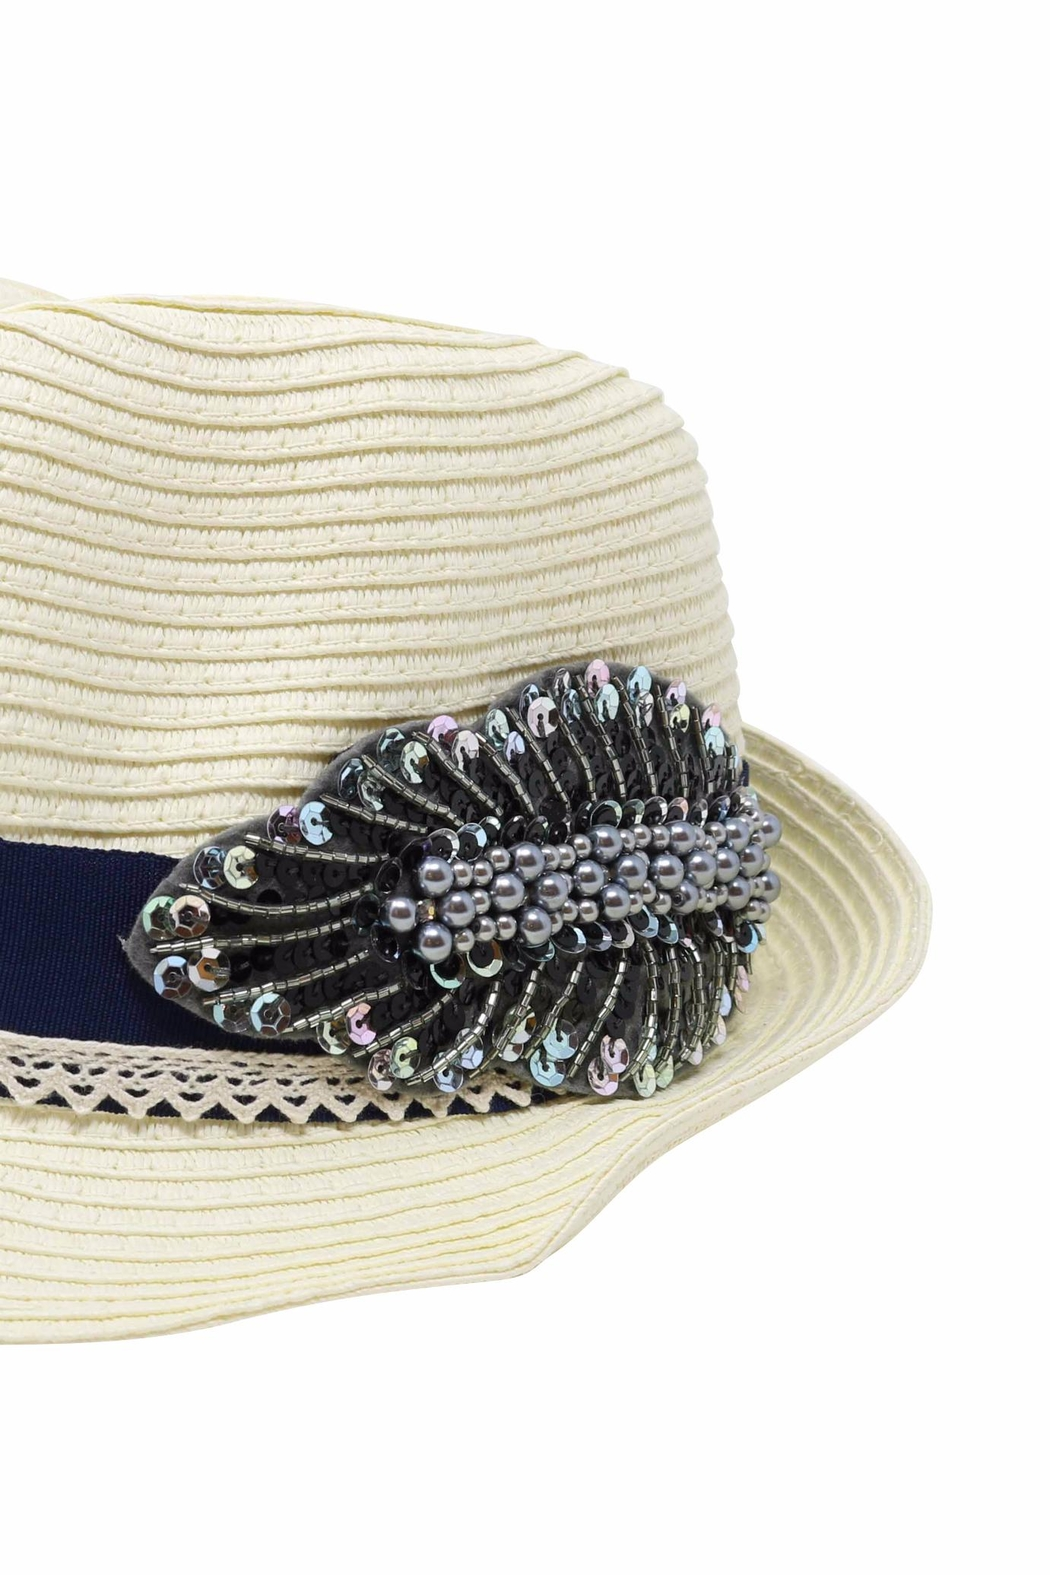 Nadya's Closet Beads & Sequins Fedora - Front Full Image